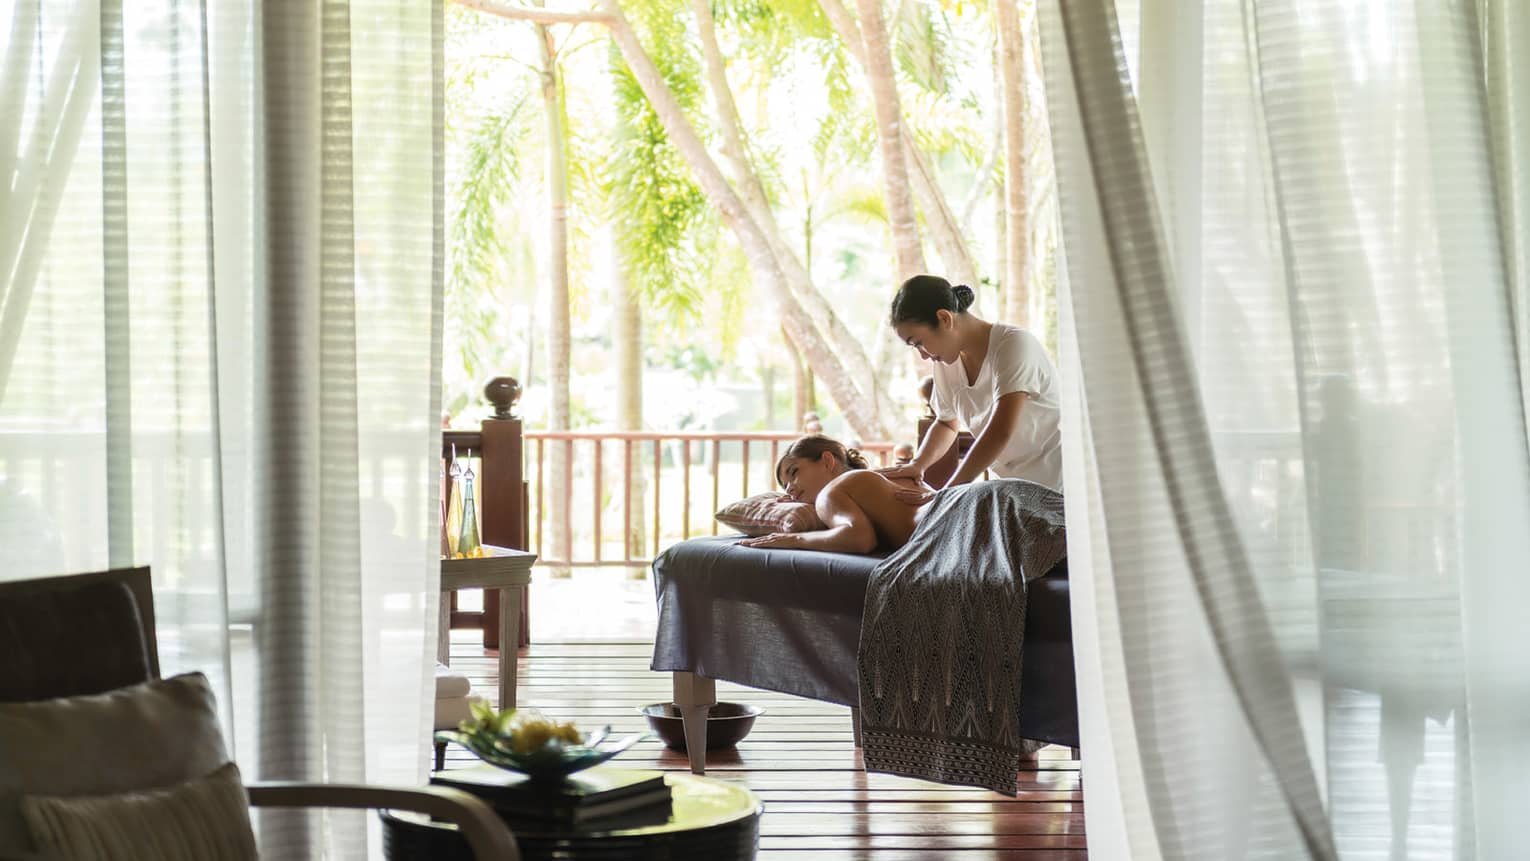 Spa staff massages woman's back, shoulders on table by sheer white curtains